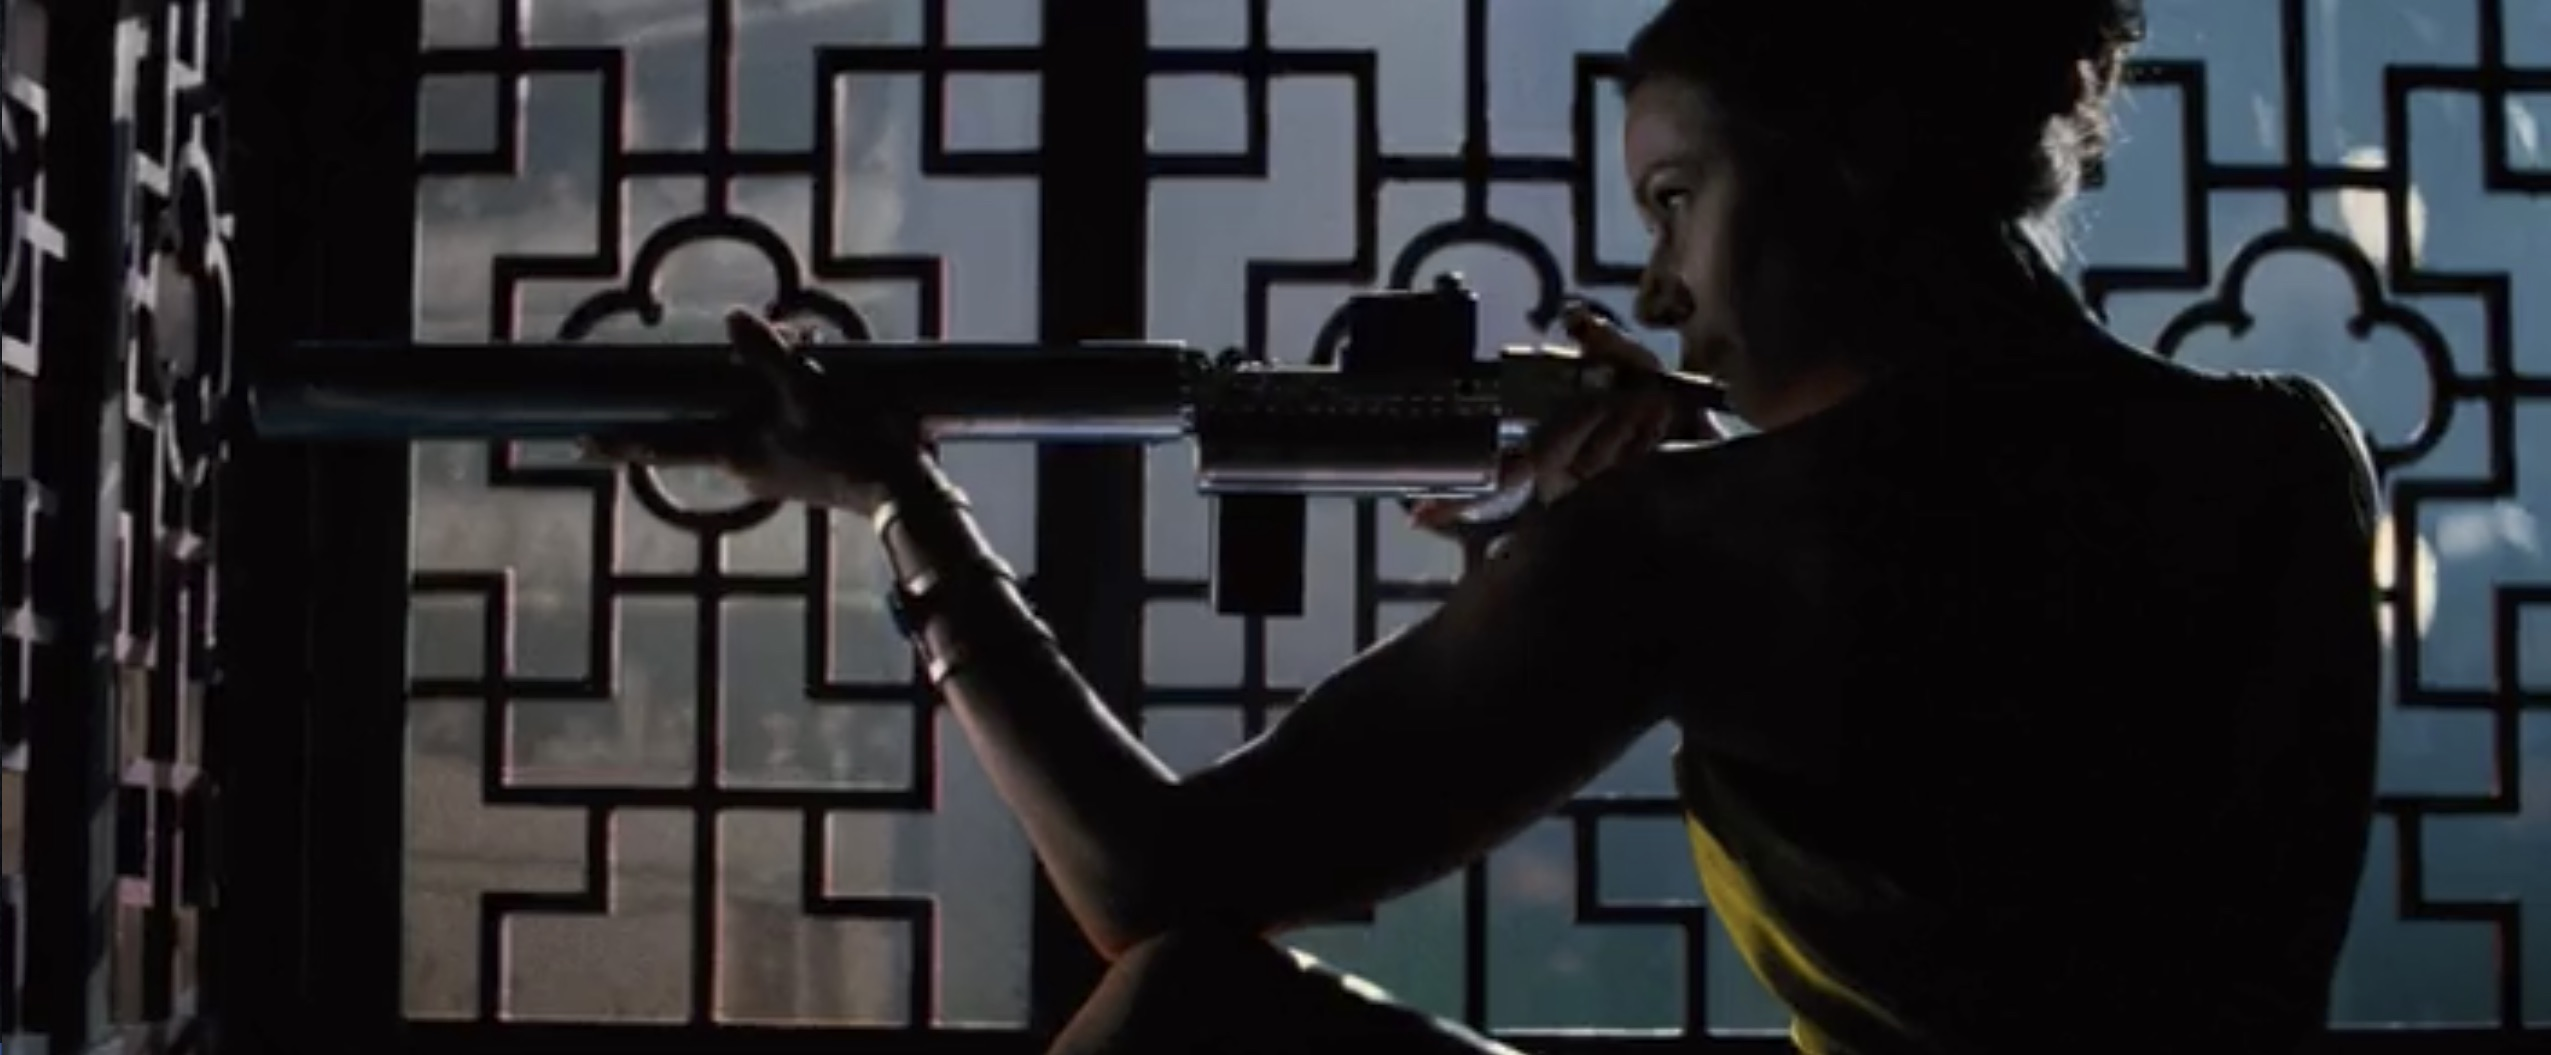 Mission Impossible: Rogue Nation hiding in shadows